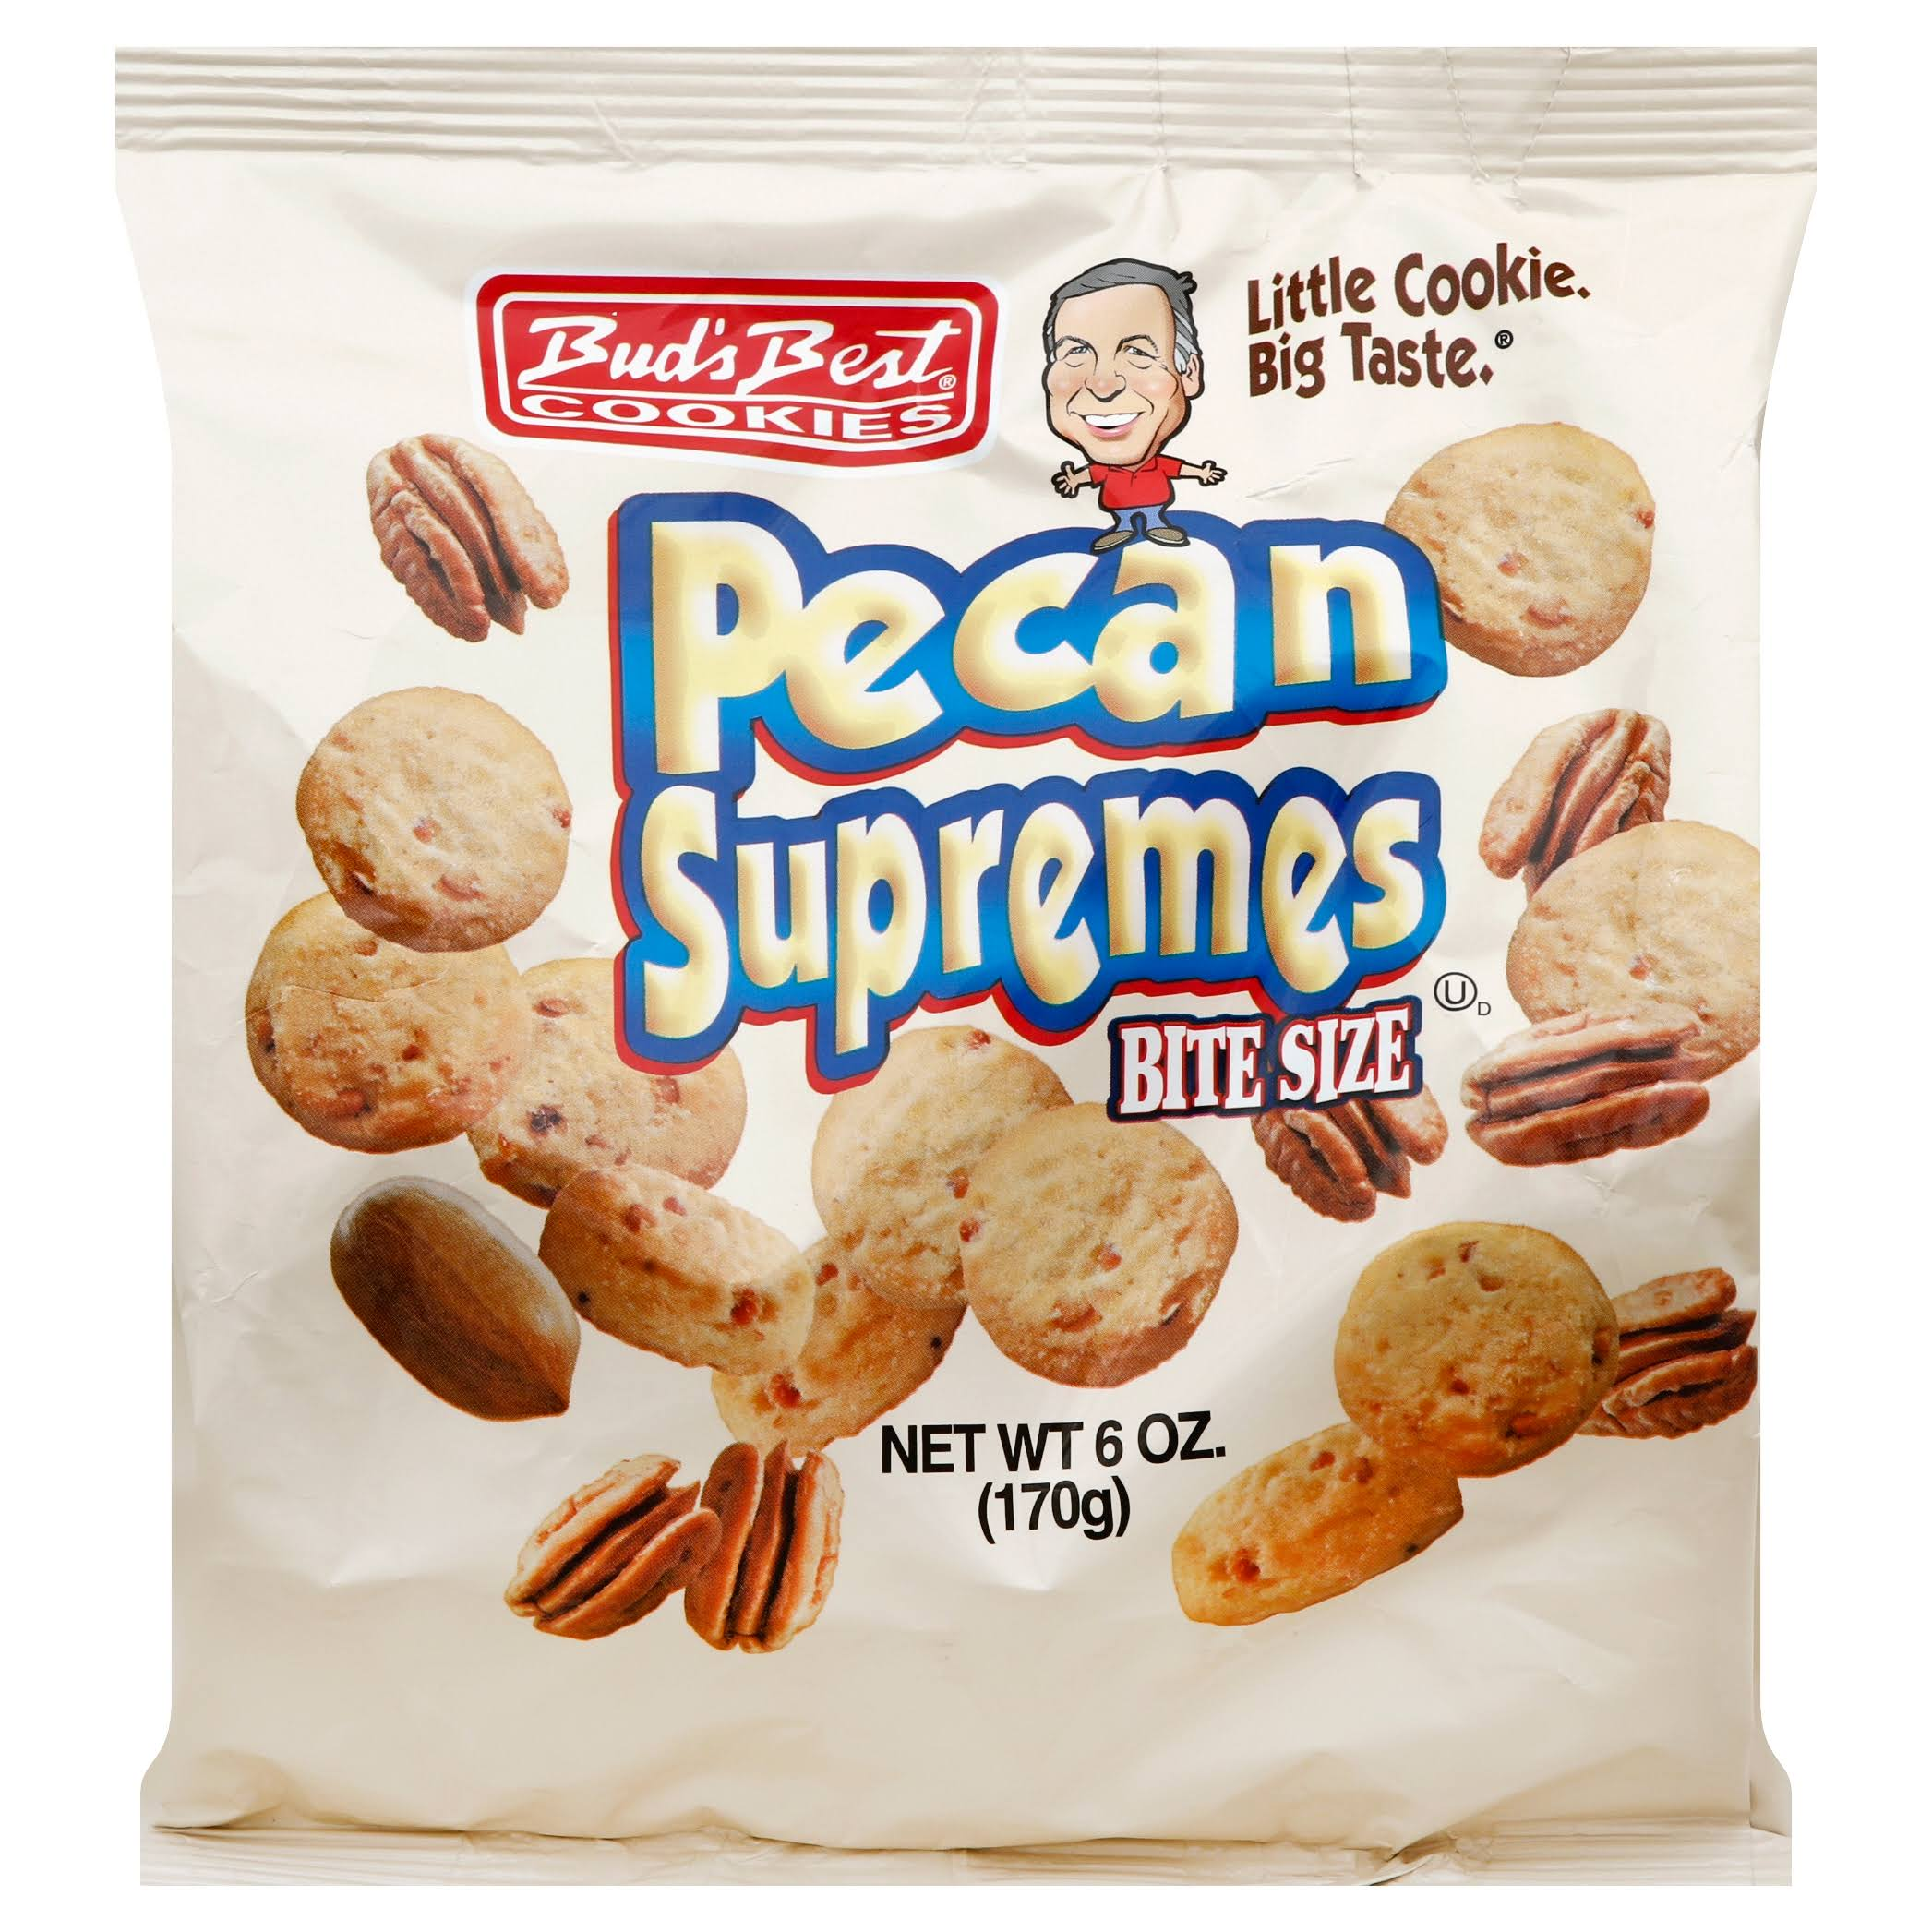 Buds Best Pecan Supremes Cookies